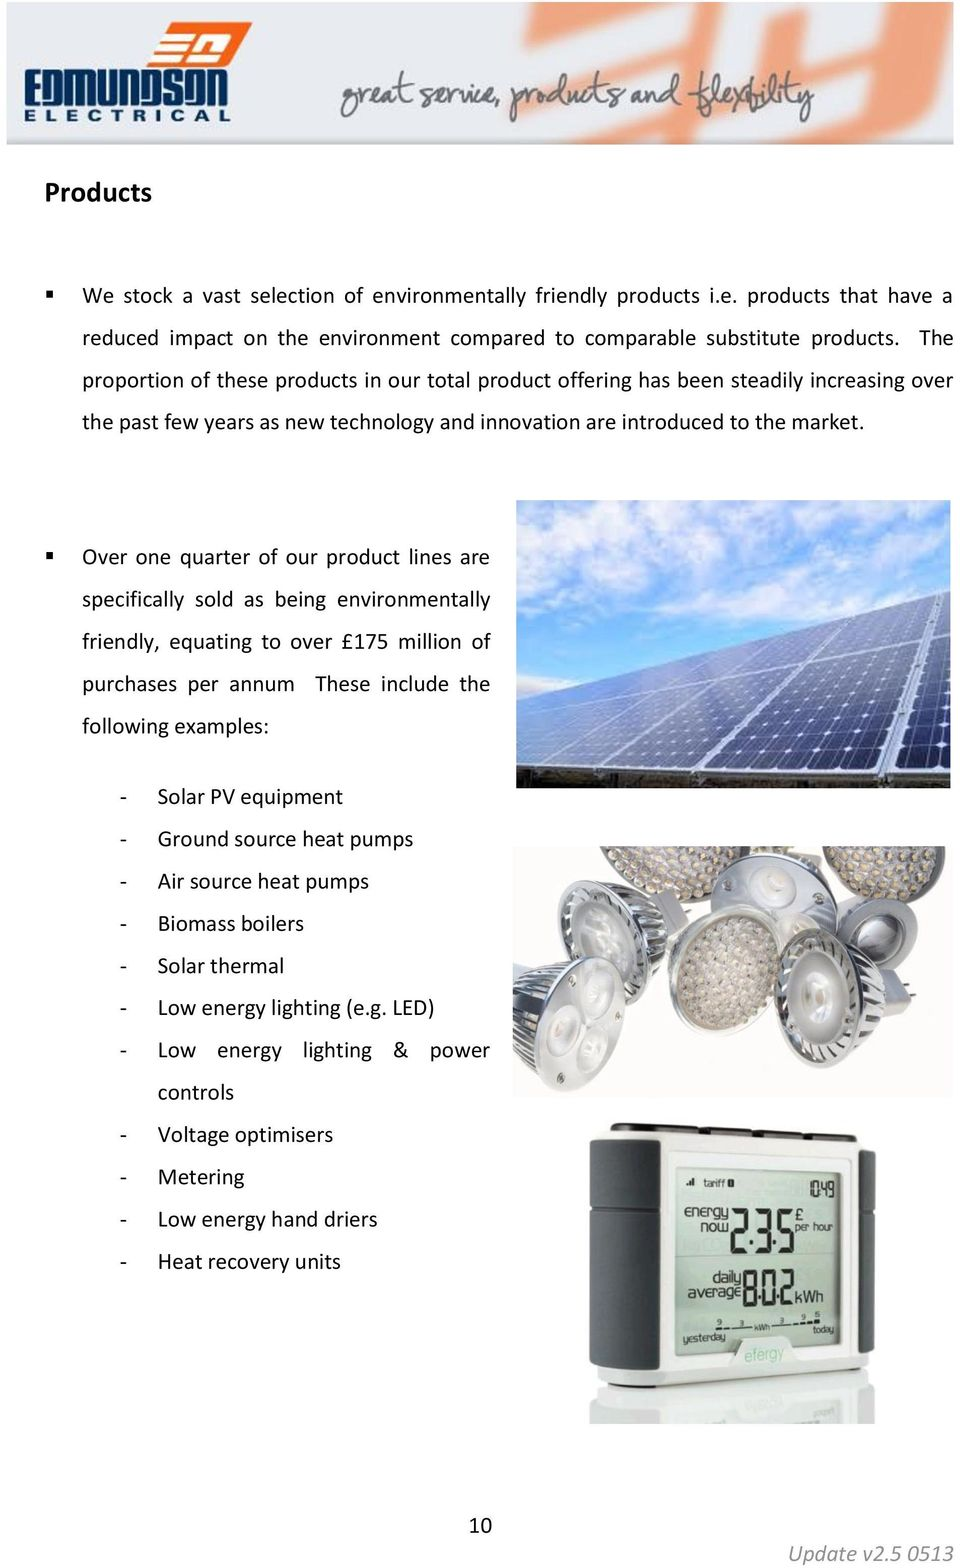 Over one quarter of our product lines are specifically sold as being environmentally friendly, equating to over 175 million of purchases per annum These include the following examples: - Solar PV